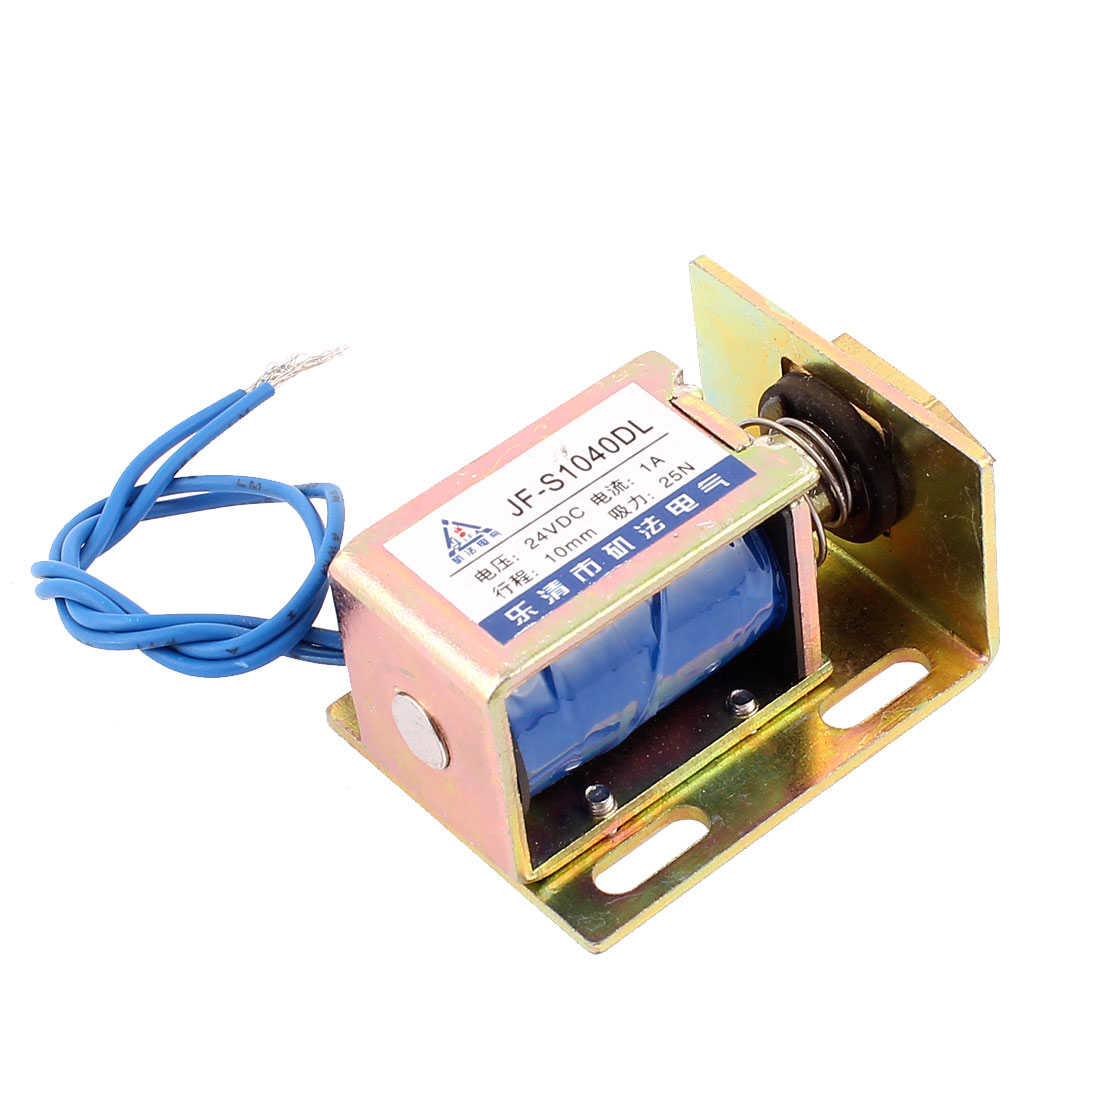 UXCELL Jf-S1040dl  24V 1A 25N Force Energy Saving Tractive Solenoid Electromagnet<br><br>Aliexpress